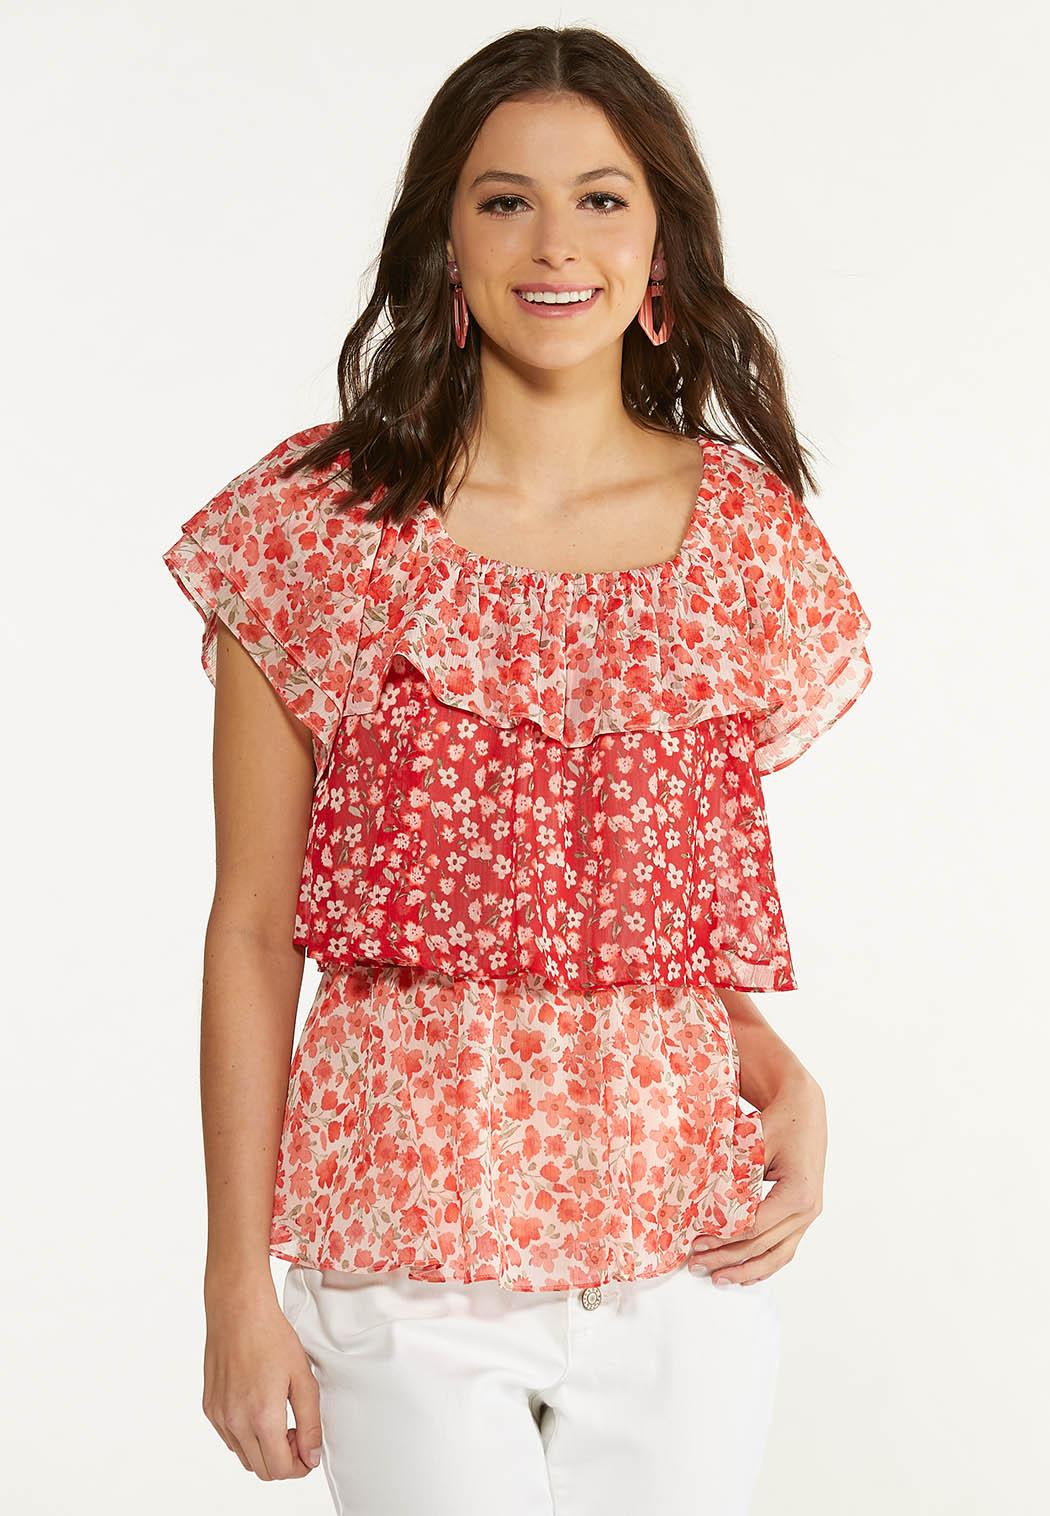 Red Floral Ruffled Top